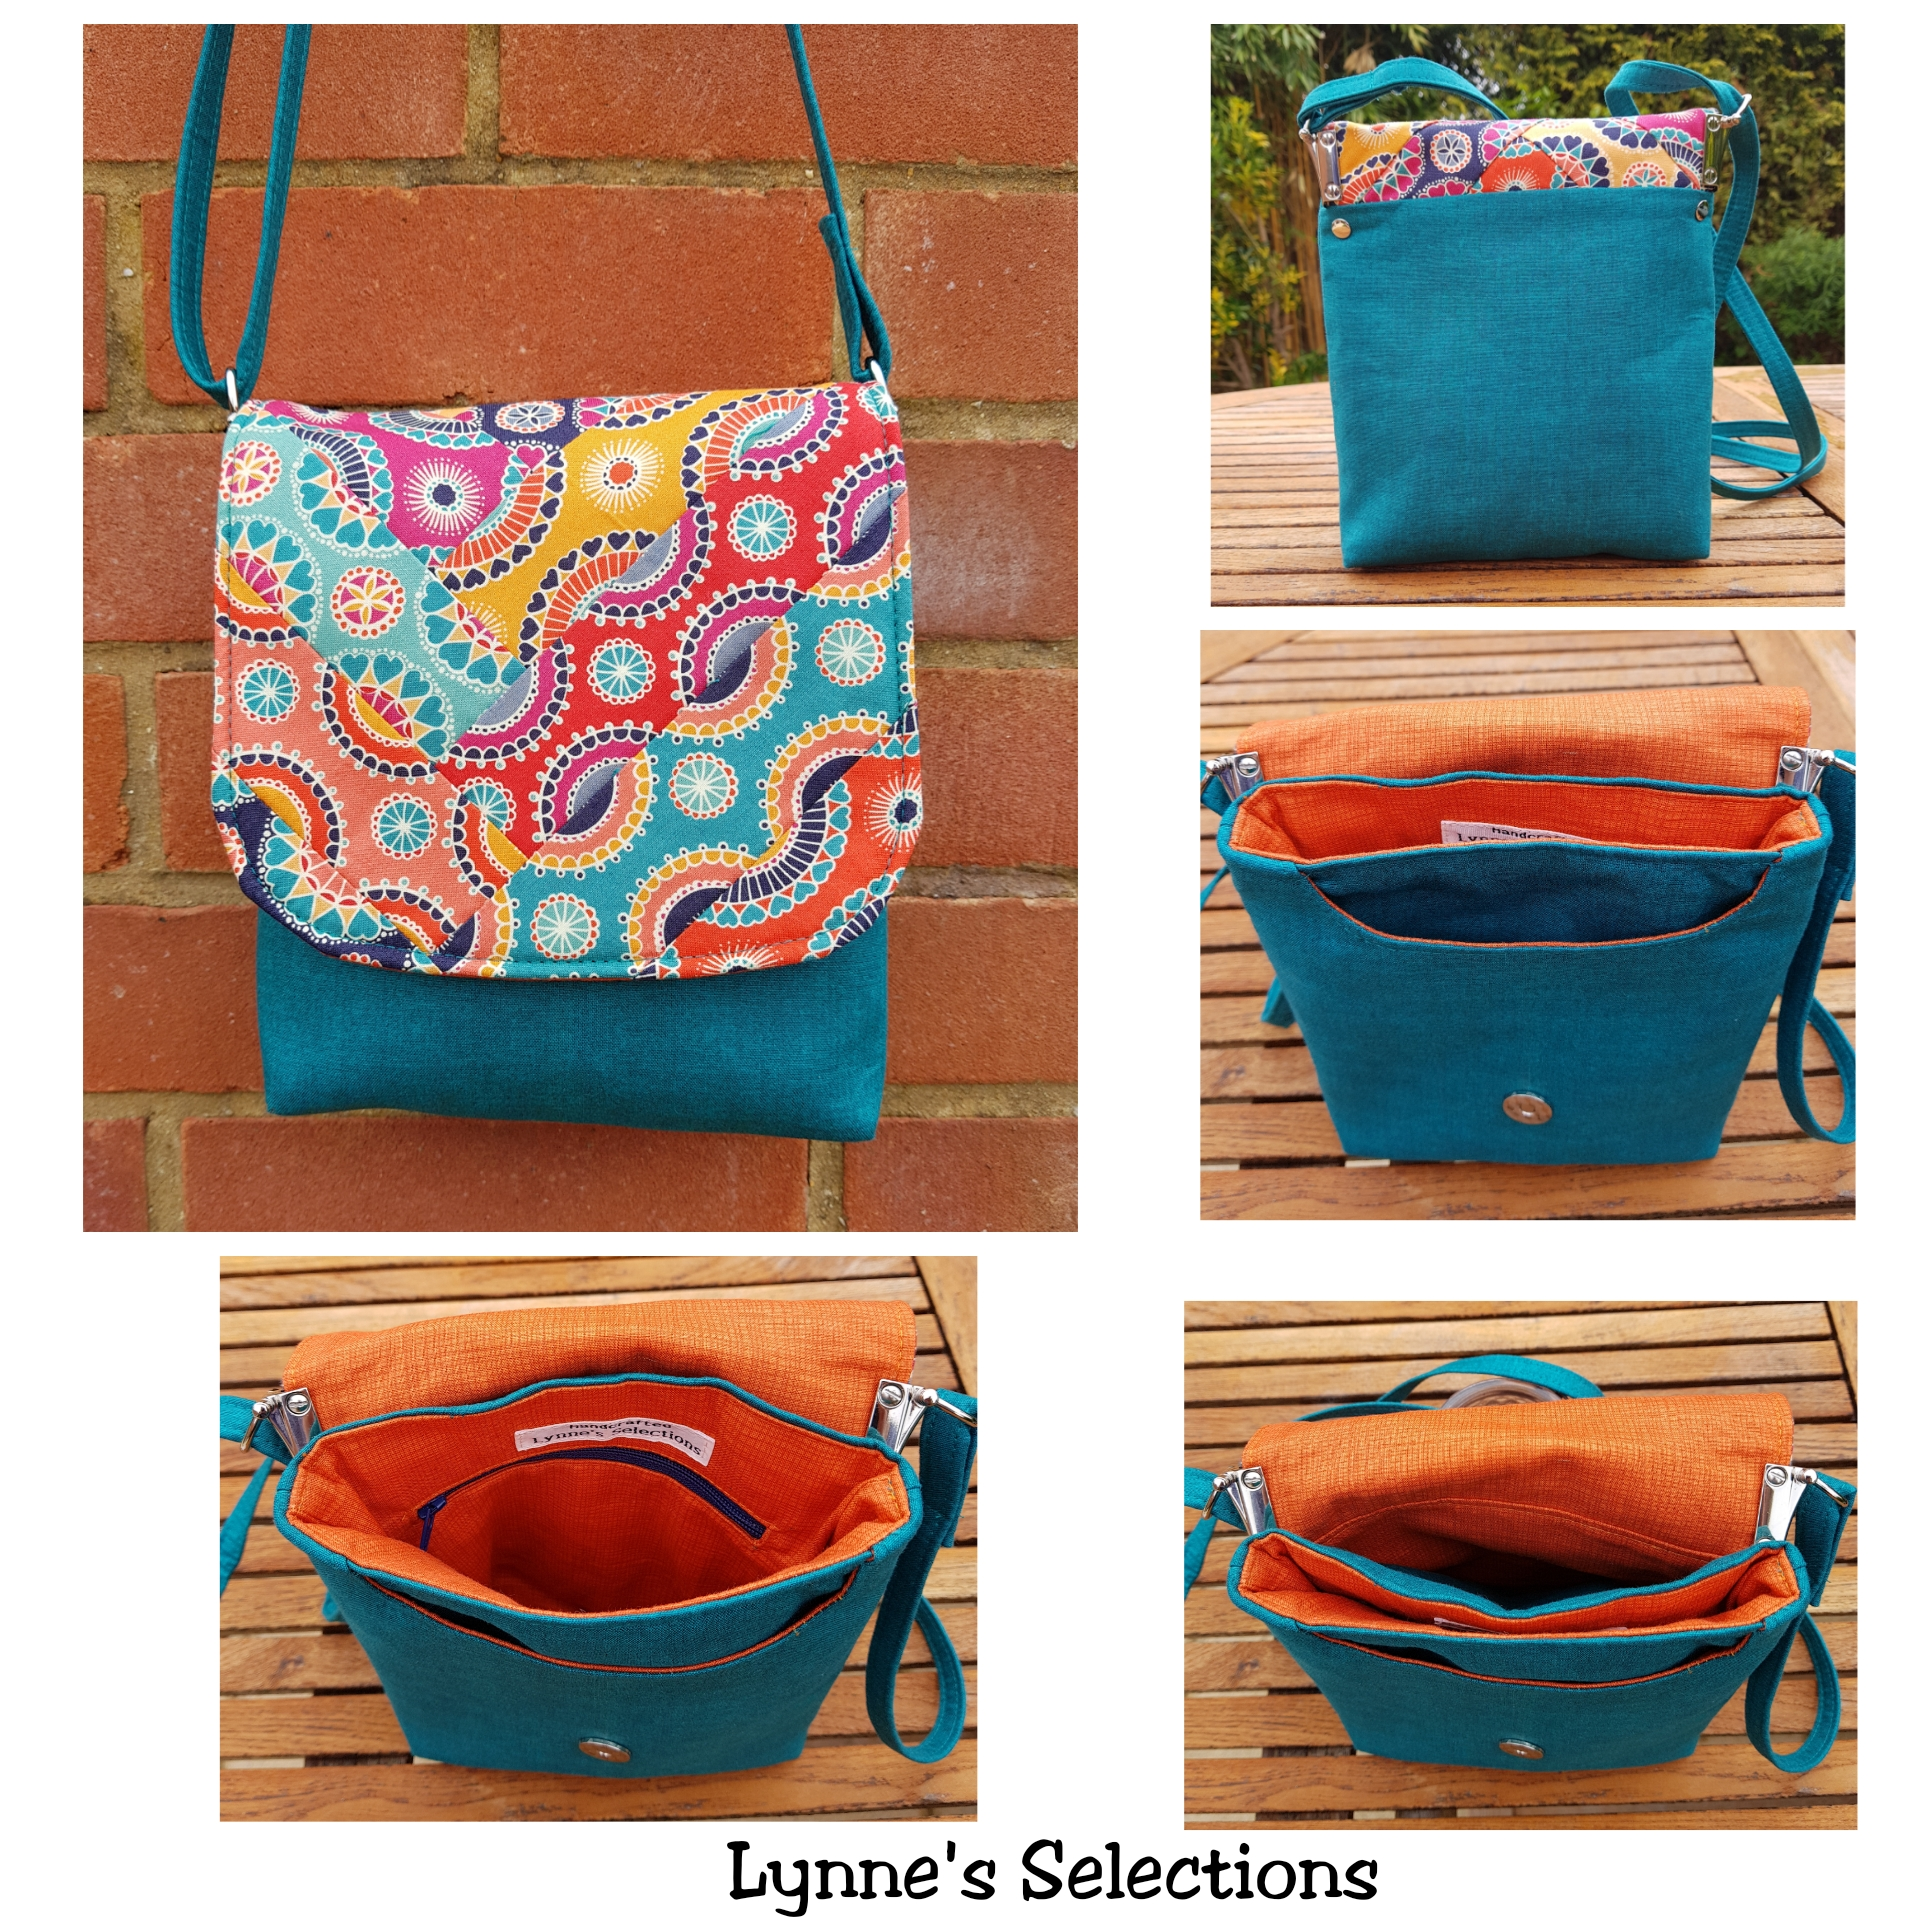 The Crossbody Bag by Sewing Patterns by Mrs H, made by Lynne's Selections